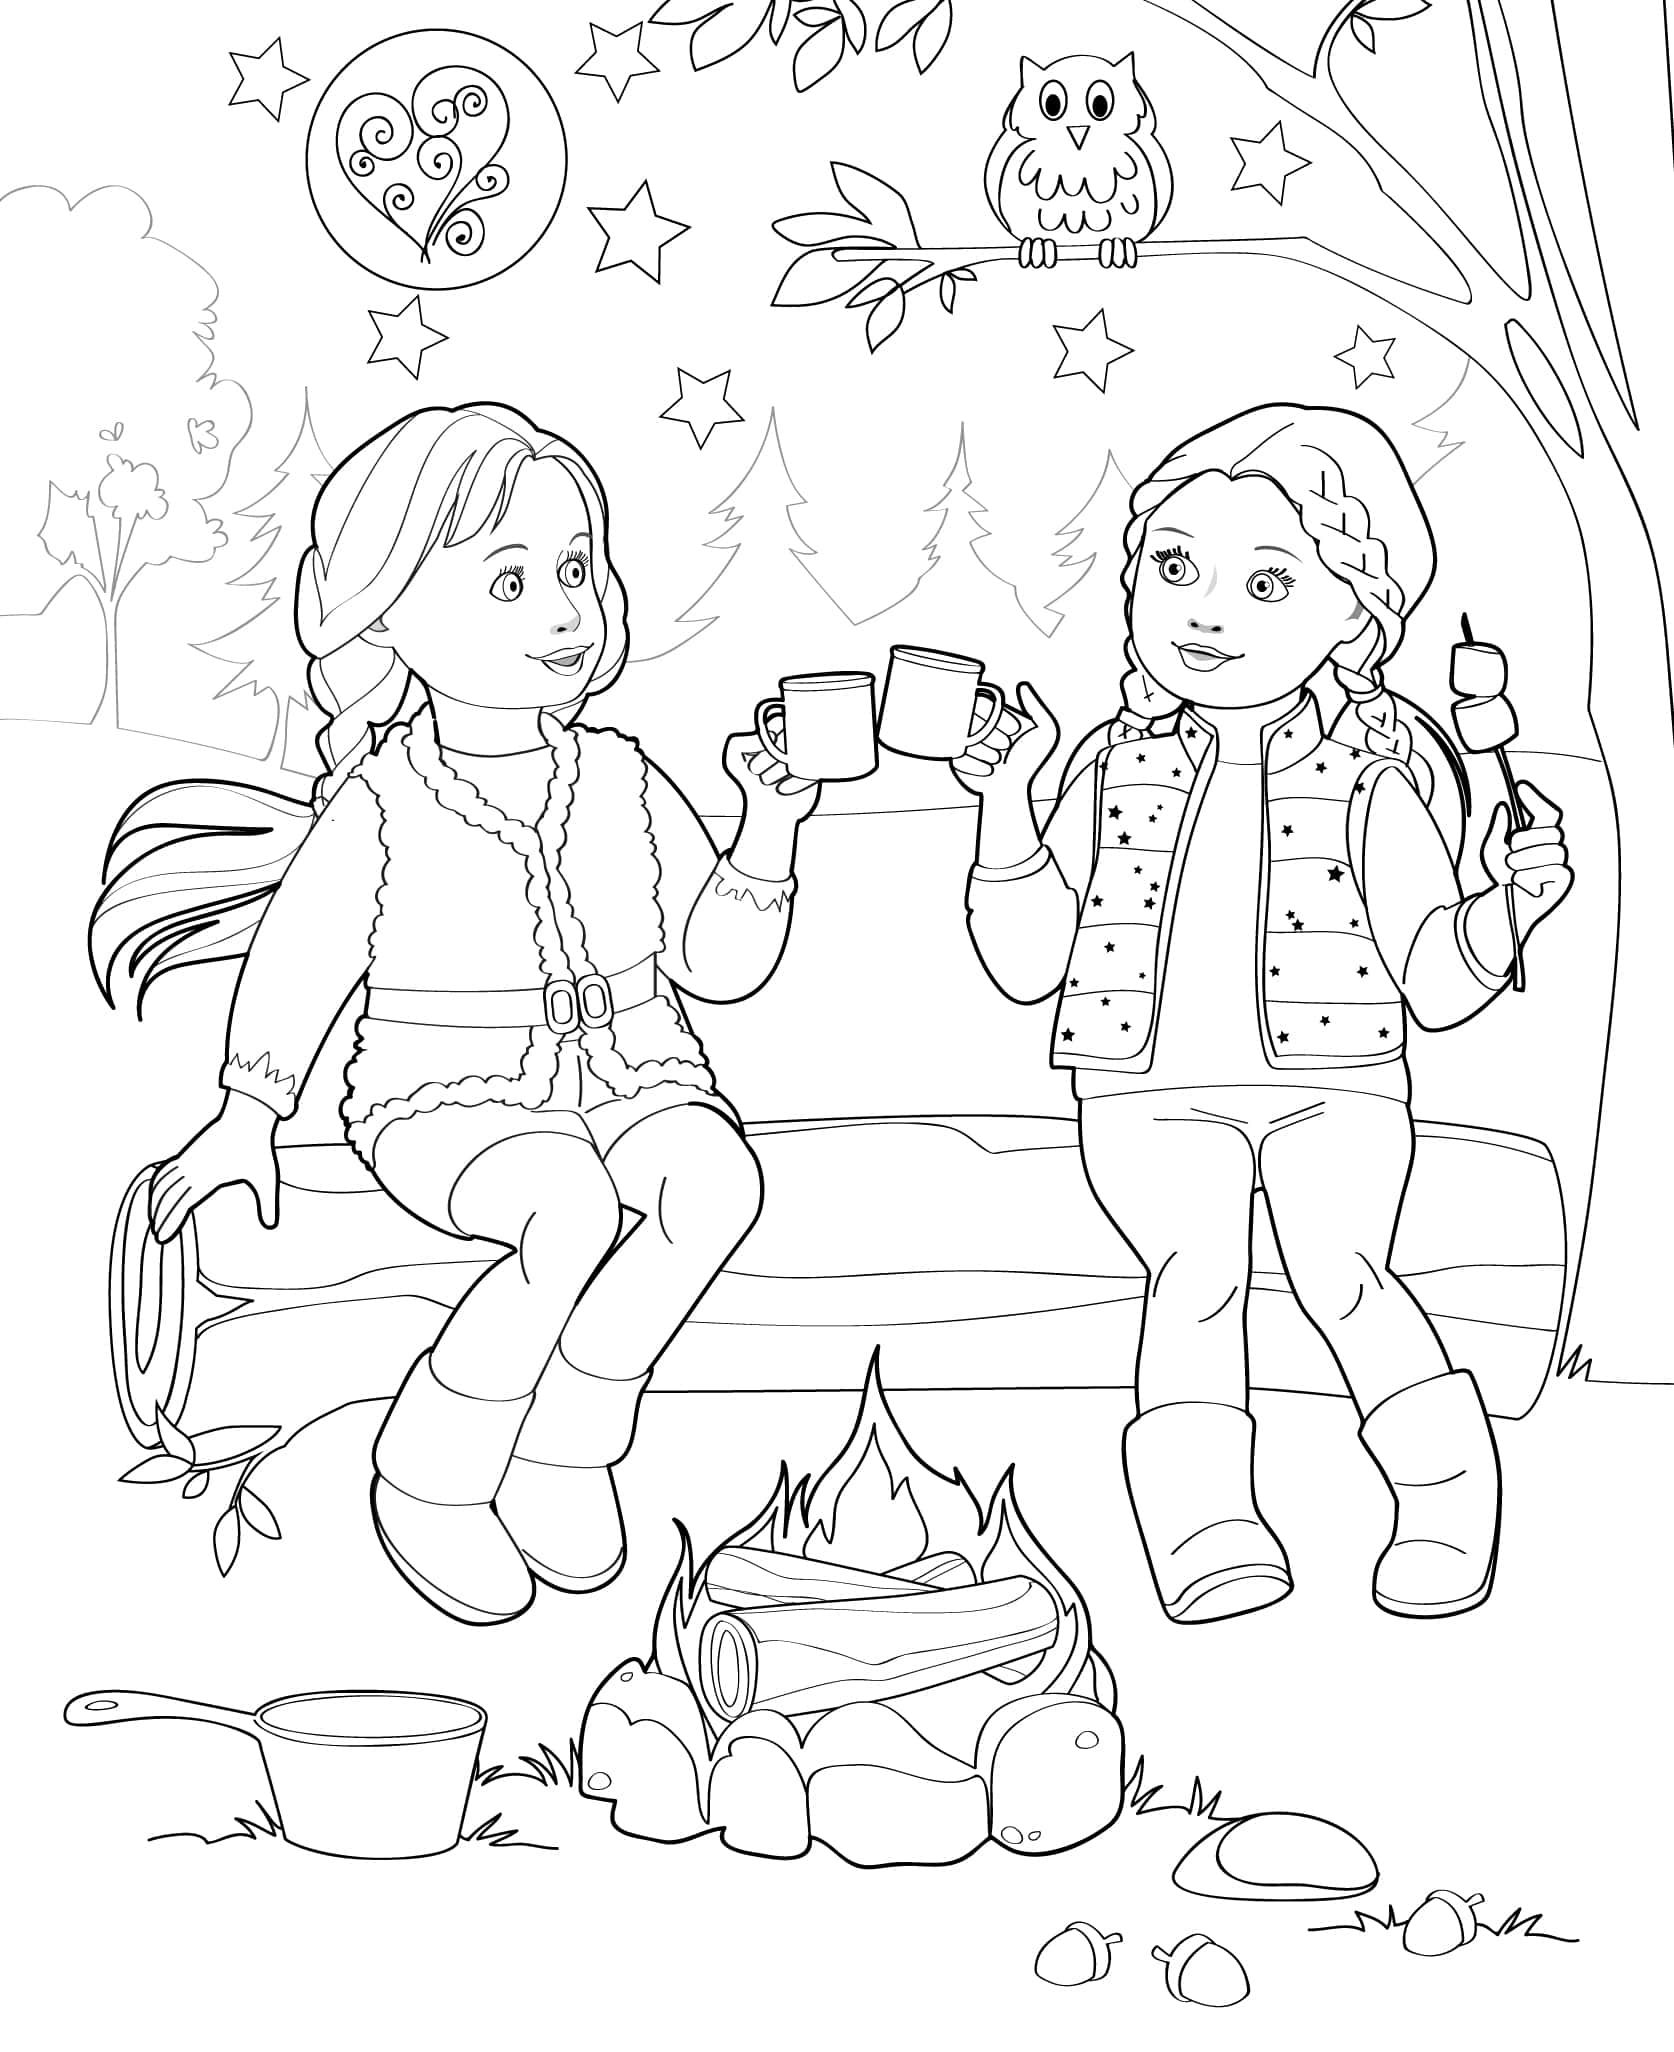 Doll Coloring Books Our Generation Coloring Pages Coloring Books Coloring Pictures